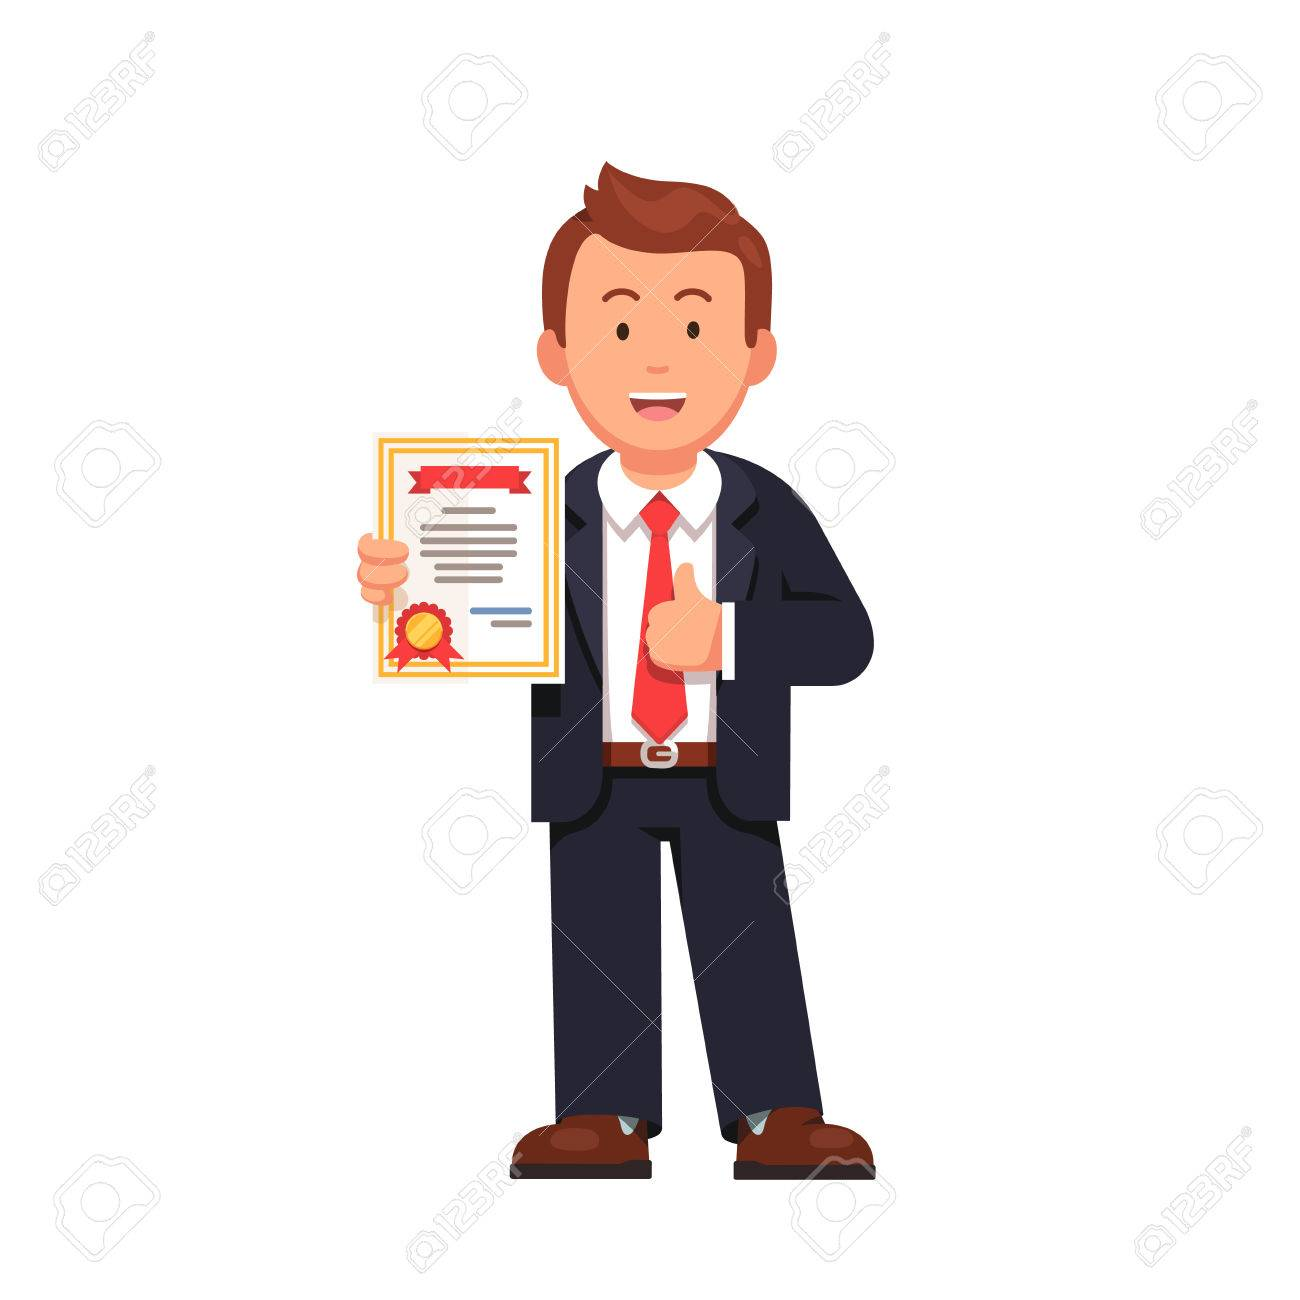 Standing business man holding certificate or diploma and showing thumbs up gesture. Flat style vector illustration isolated on white background. - 67658188